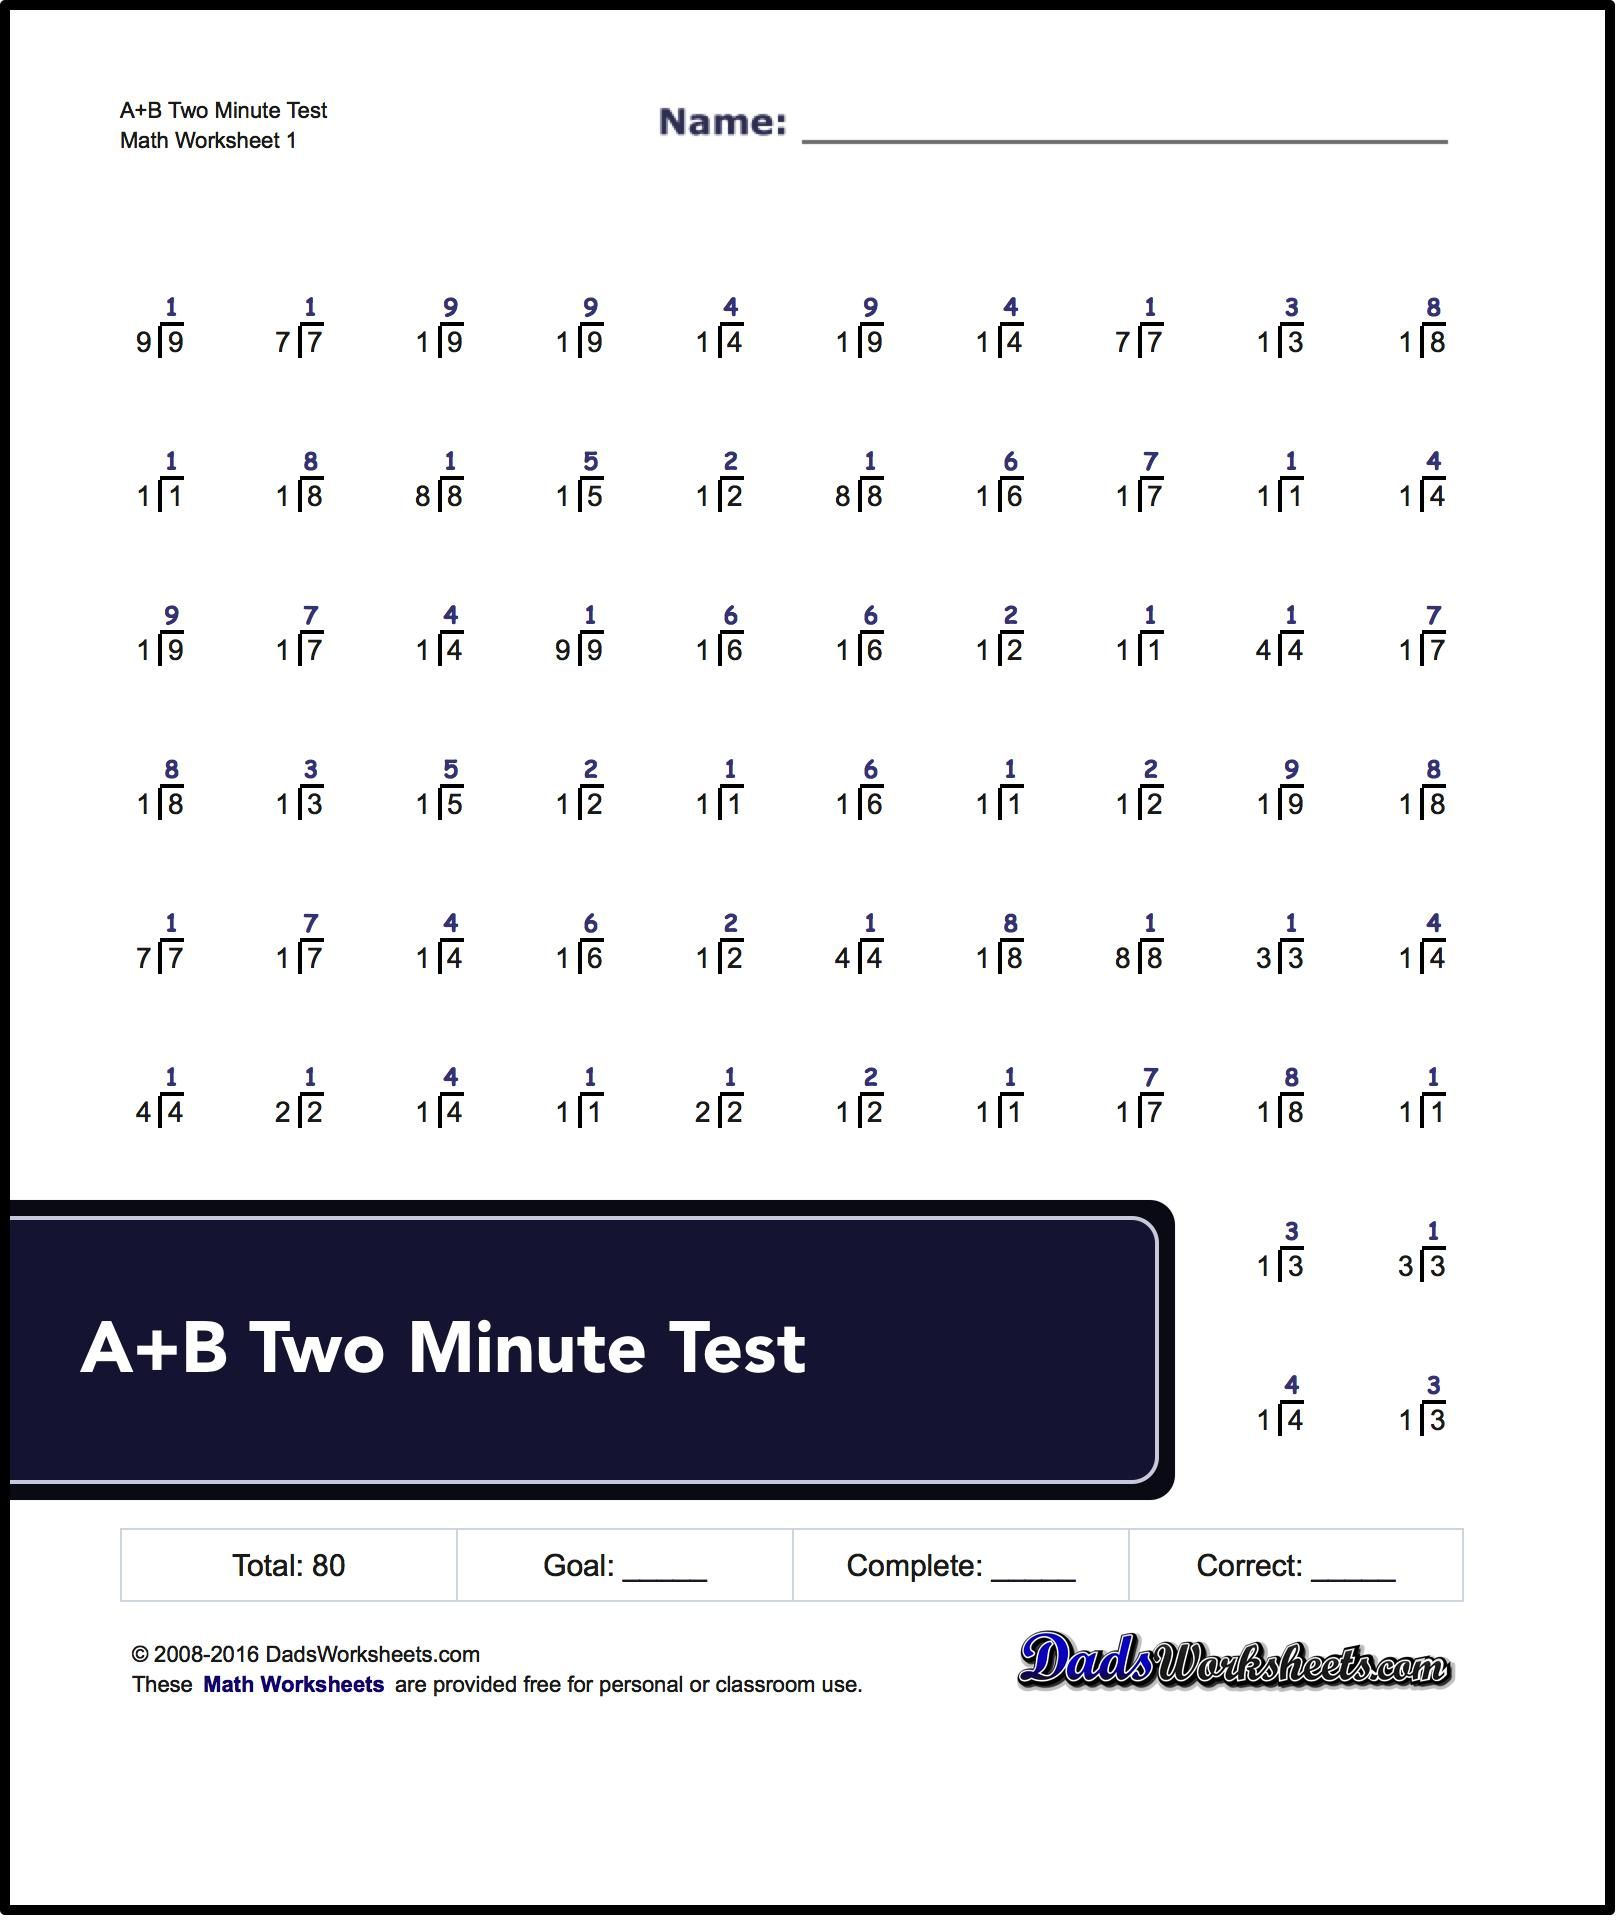 80 Problem Division Worksheets Similar To Rocketmath Tests